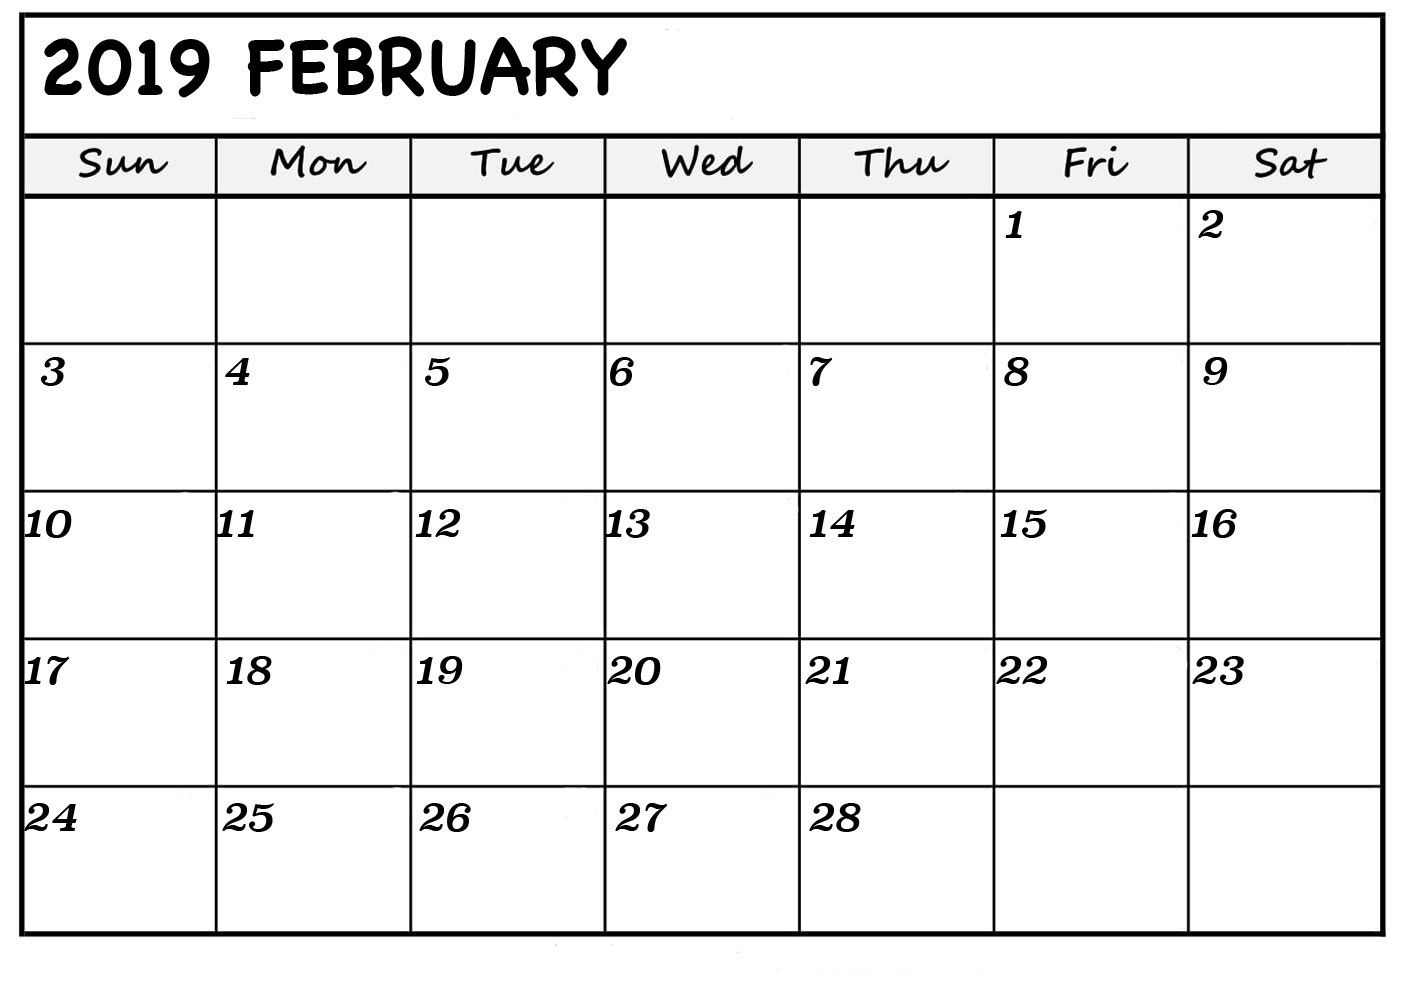 February 2019 Template Editable Calendar Download Free